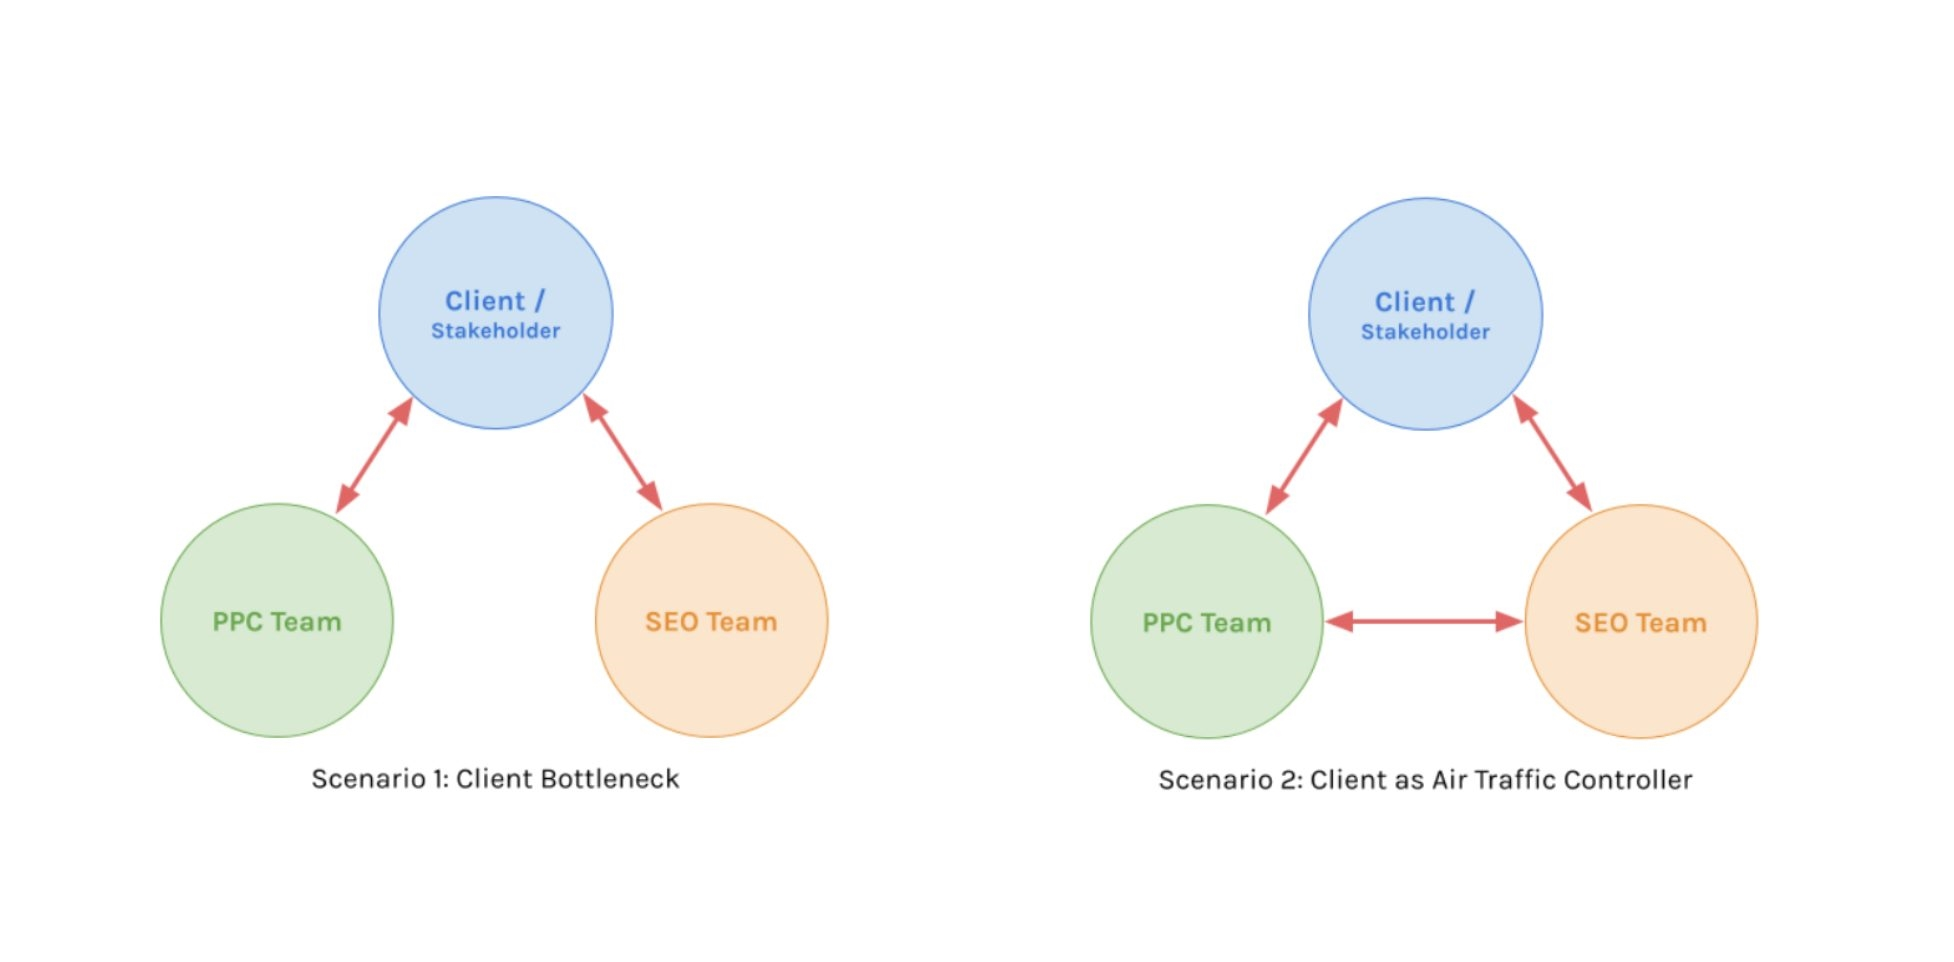 How to Get Your SEO and PPC Teams on the Same Page